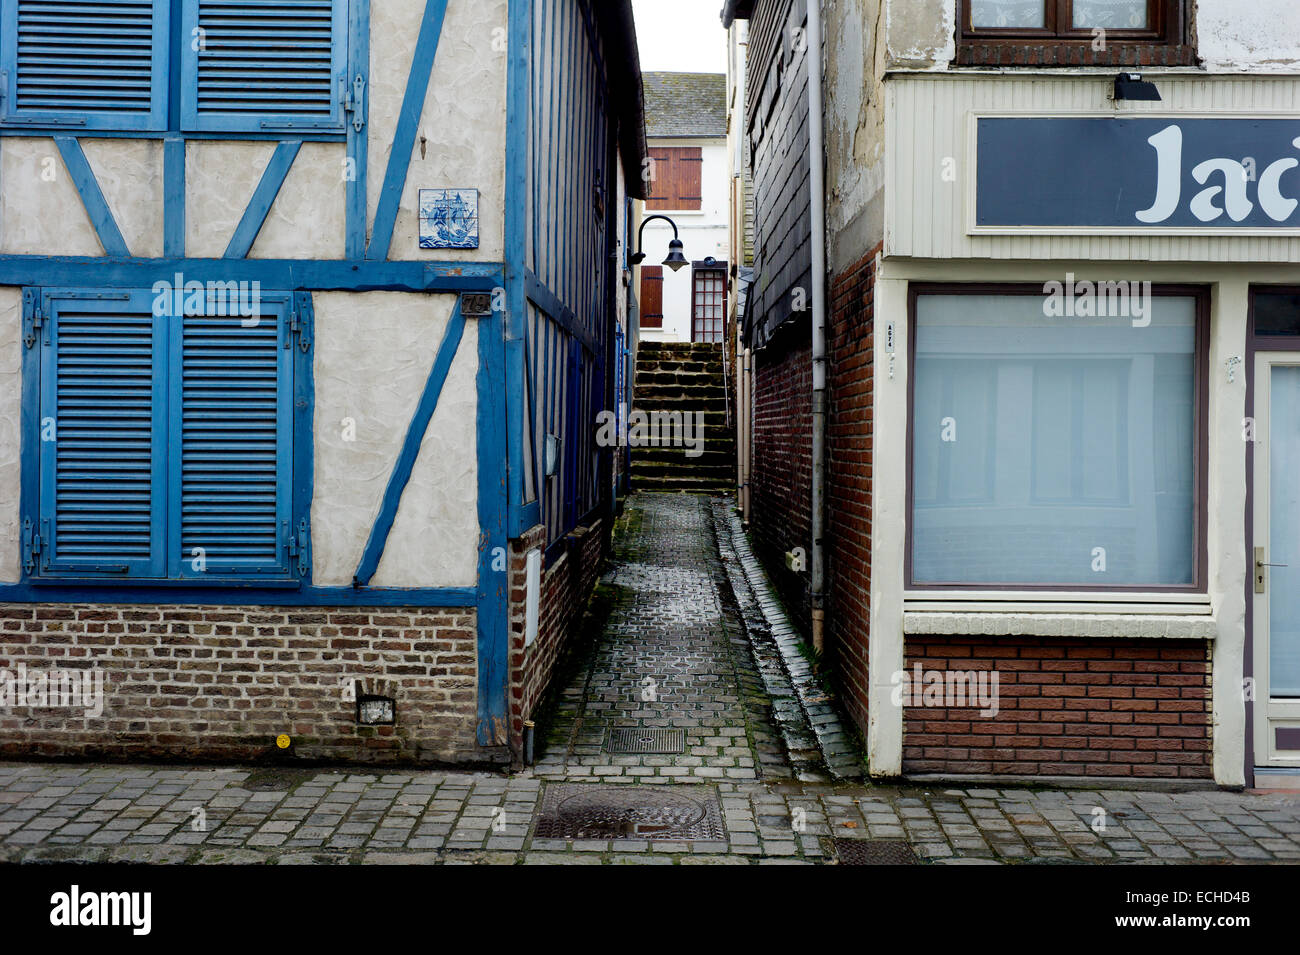 Saint-Valery-sur-Somme, Somme, France. December 2014 - Stock Image